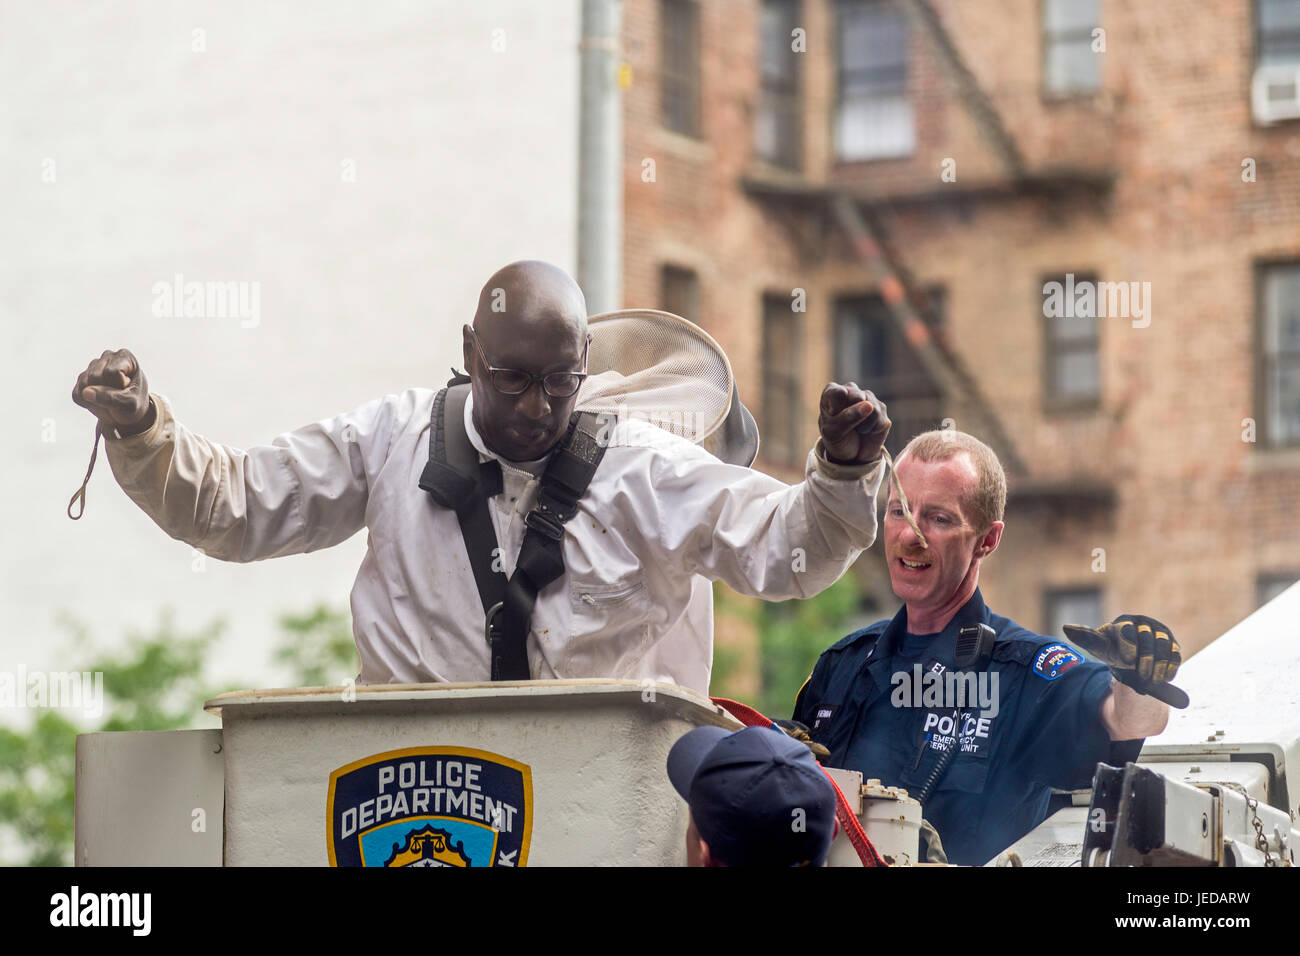 New York, NY 21 June 2017 - A Beekeeper and member of the NYPD Emergency Services Unit suits up to remove two bee - Stock Image